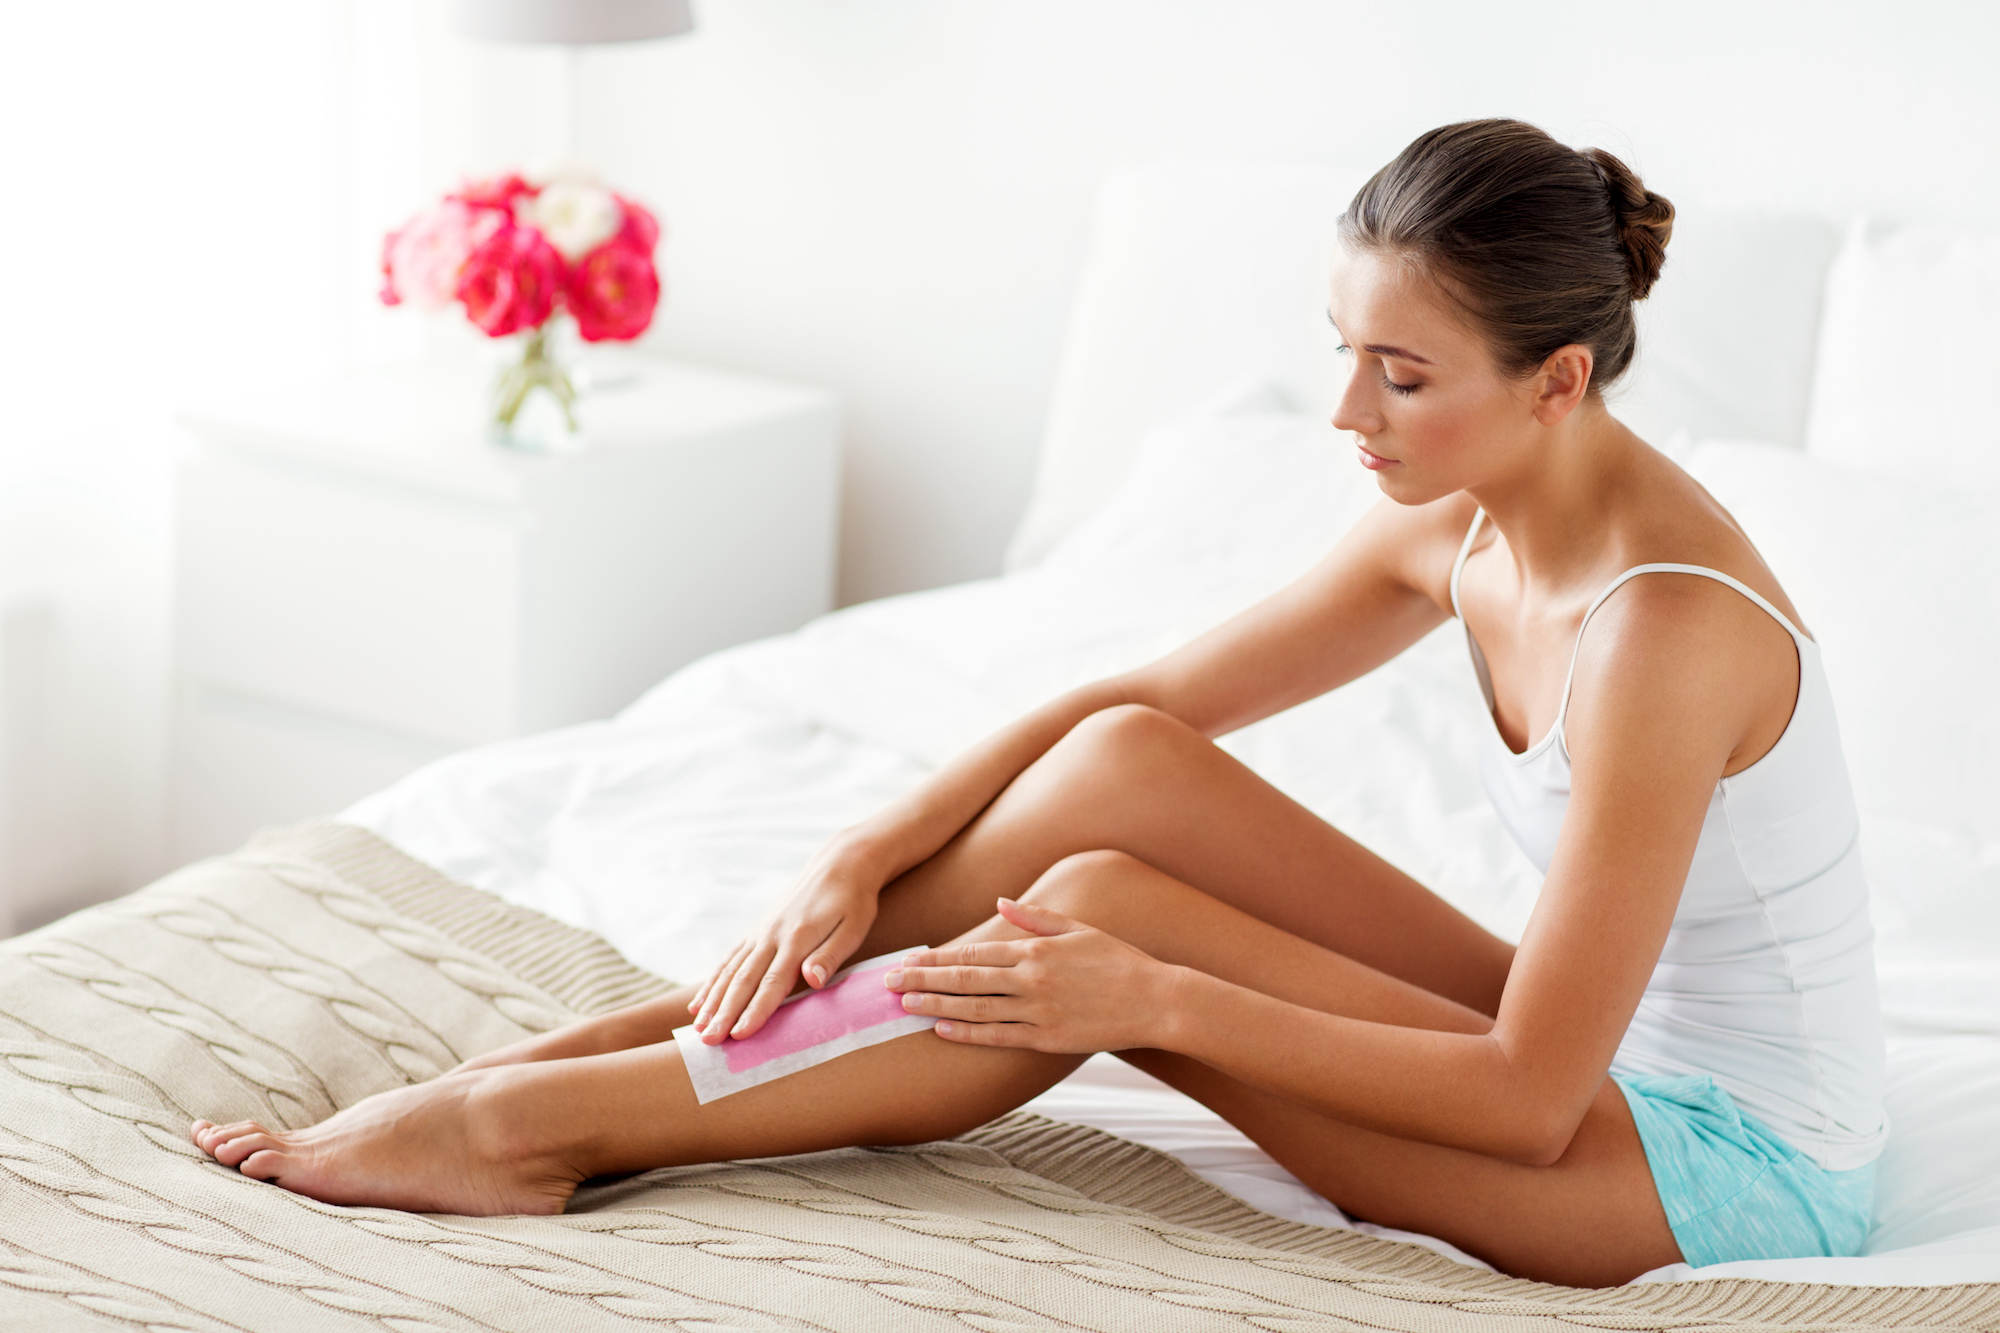 beauty, depilation, epilation, hair removal and people concept - beautiful woman applying depilatory wax strip to her leg skin at home bedroom